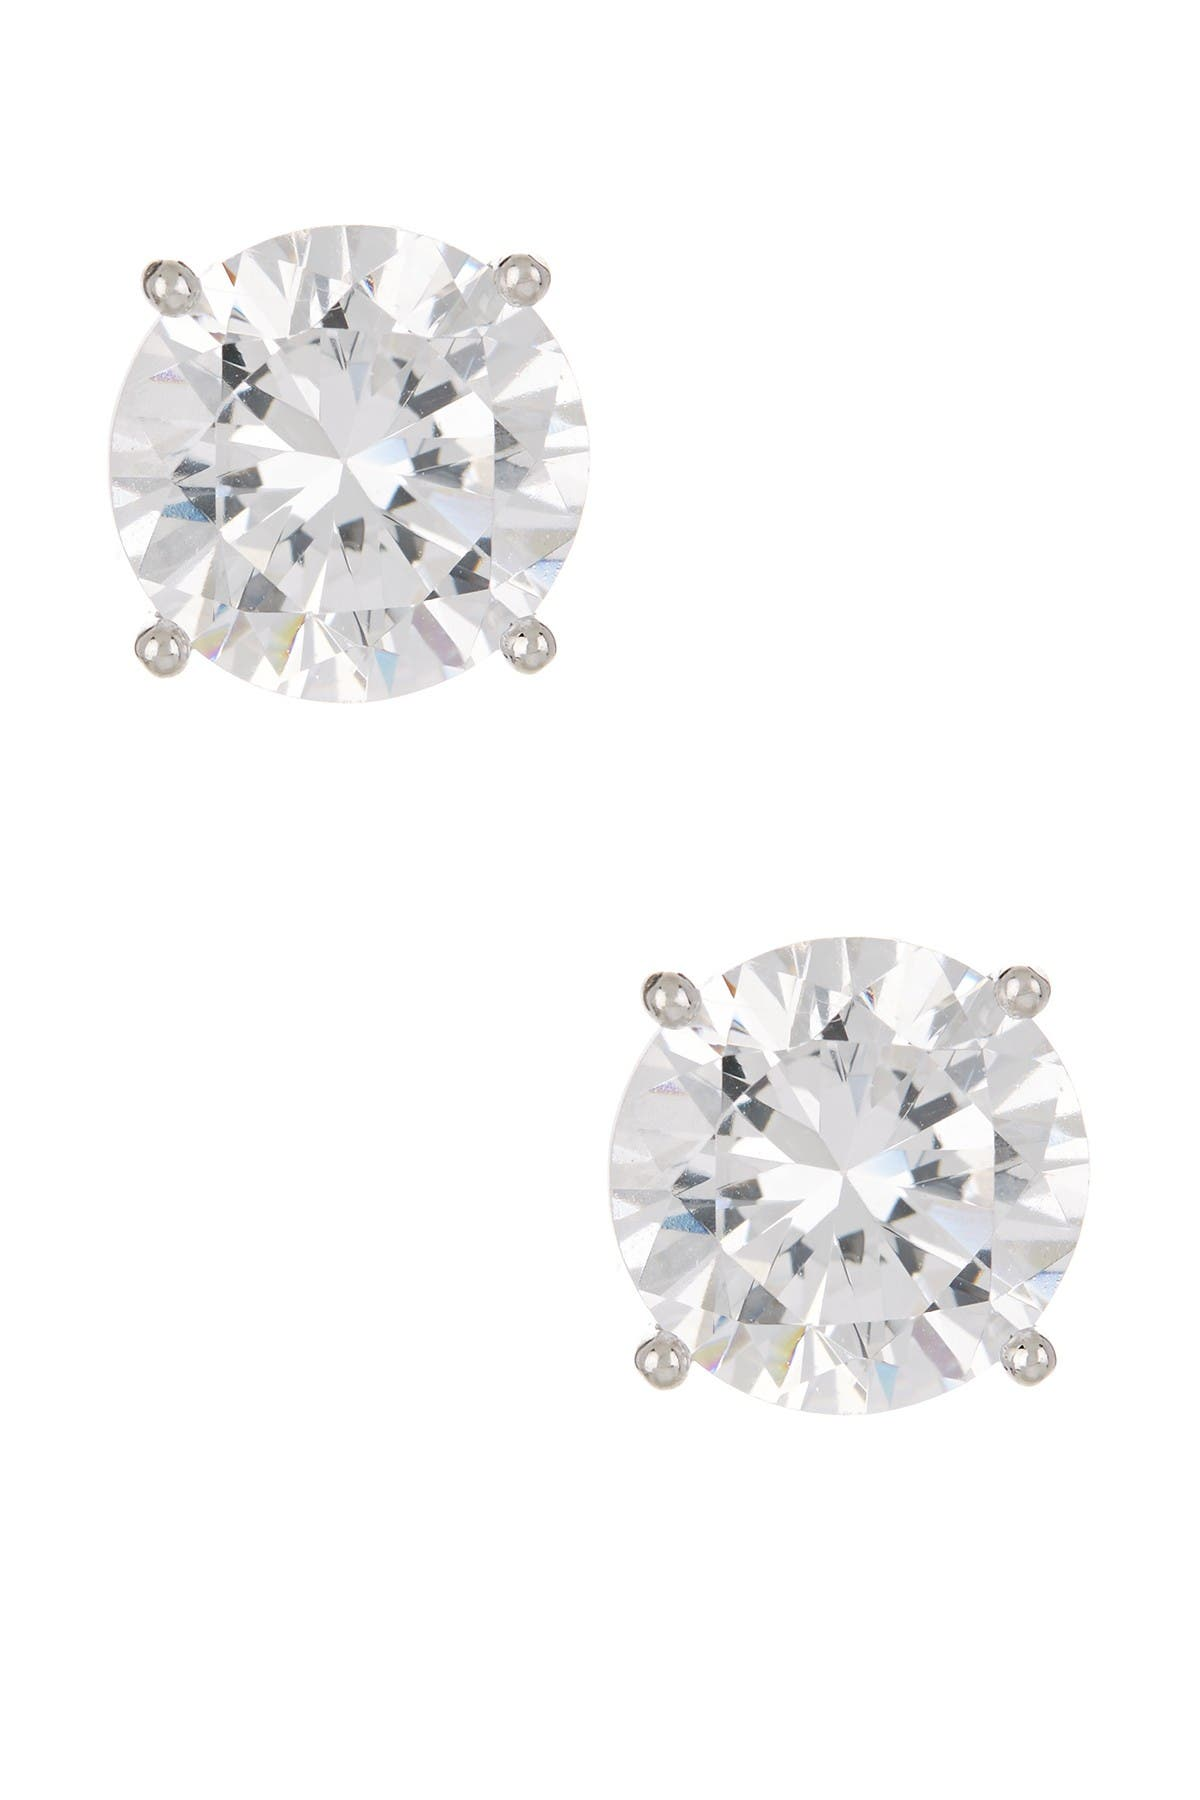 Image of Nordstrom Rack Round CZ Stud Earrings - 6.00 ctw